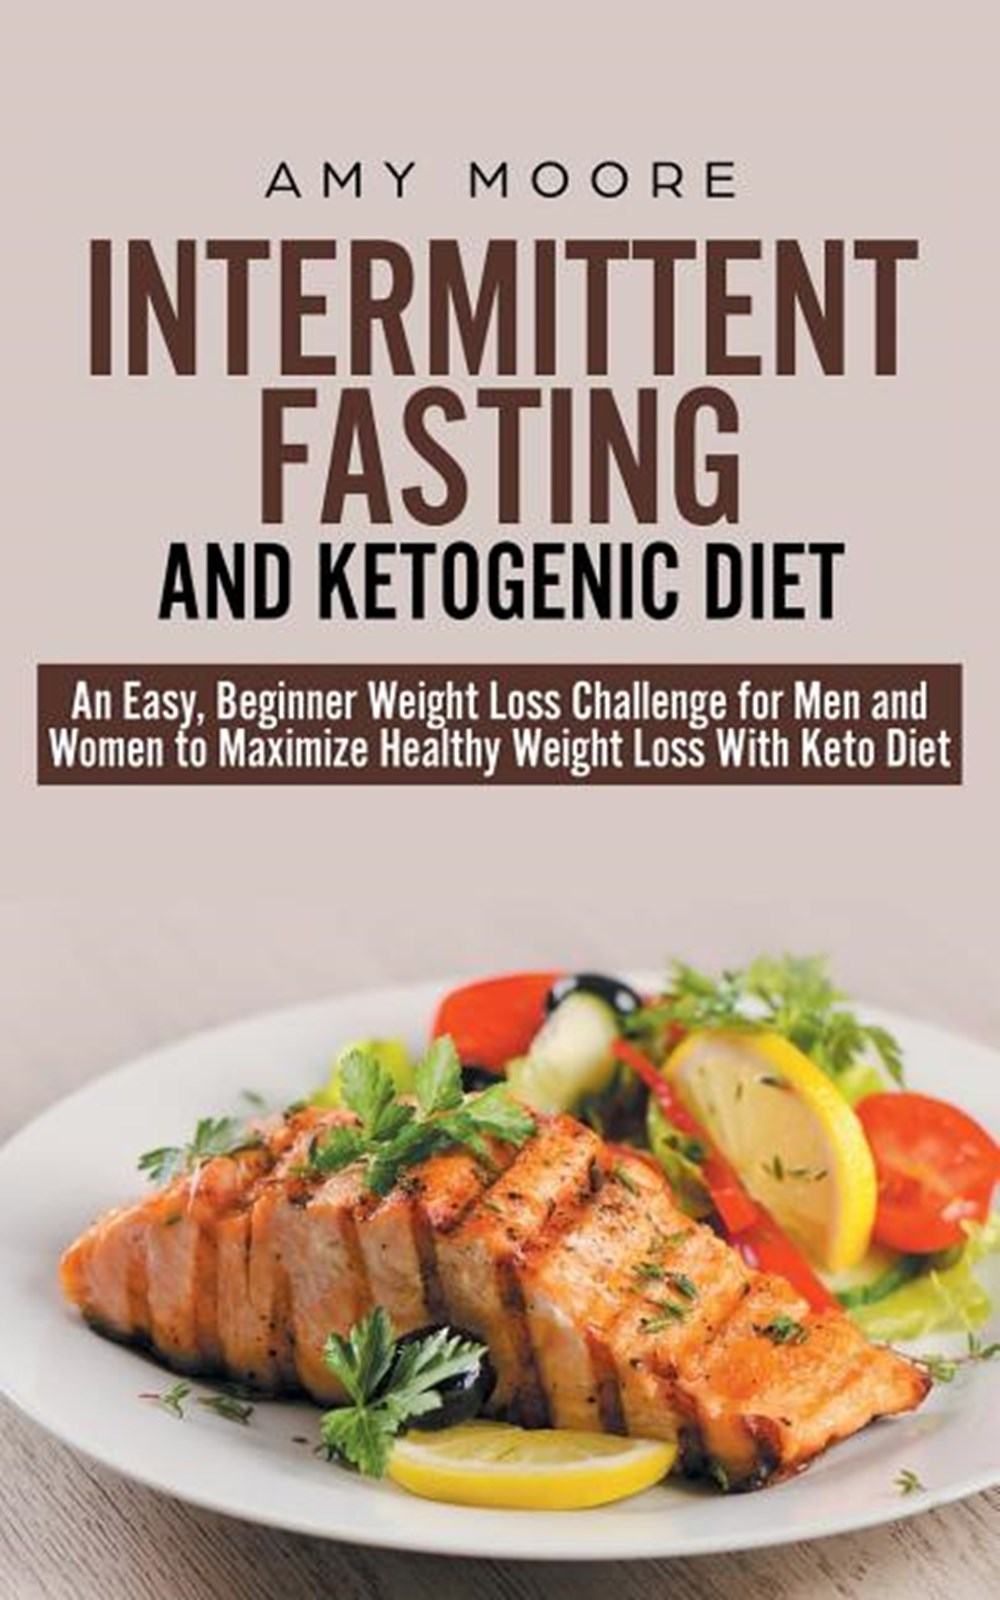 Intermittent-Fasting and Ketogenic-Diet An Easy, Beginner Weight Loss Challenge for Men and Women to